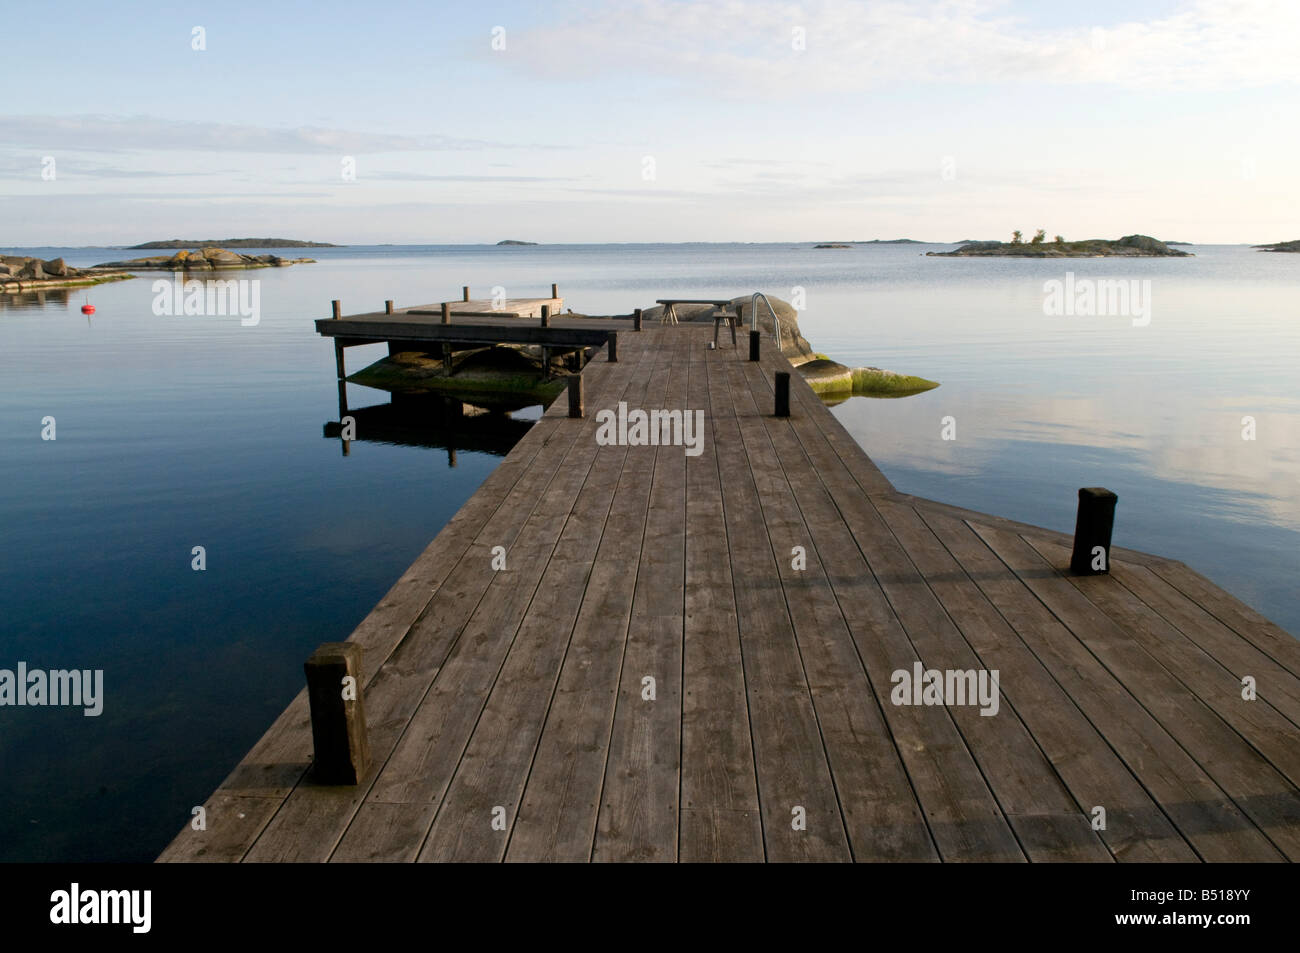 Wooden jetty in private bay, on the island of Västerö, Rödlöga in the Stockholm archipelago - Stock Image